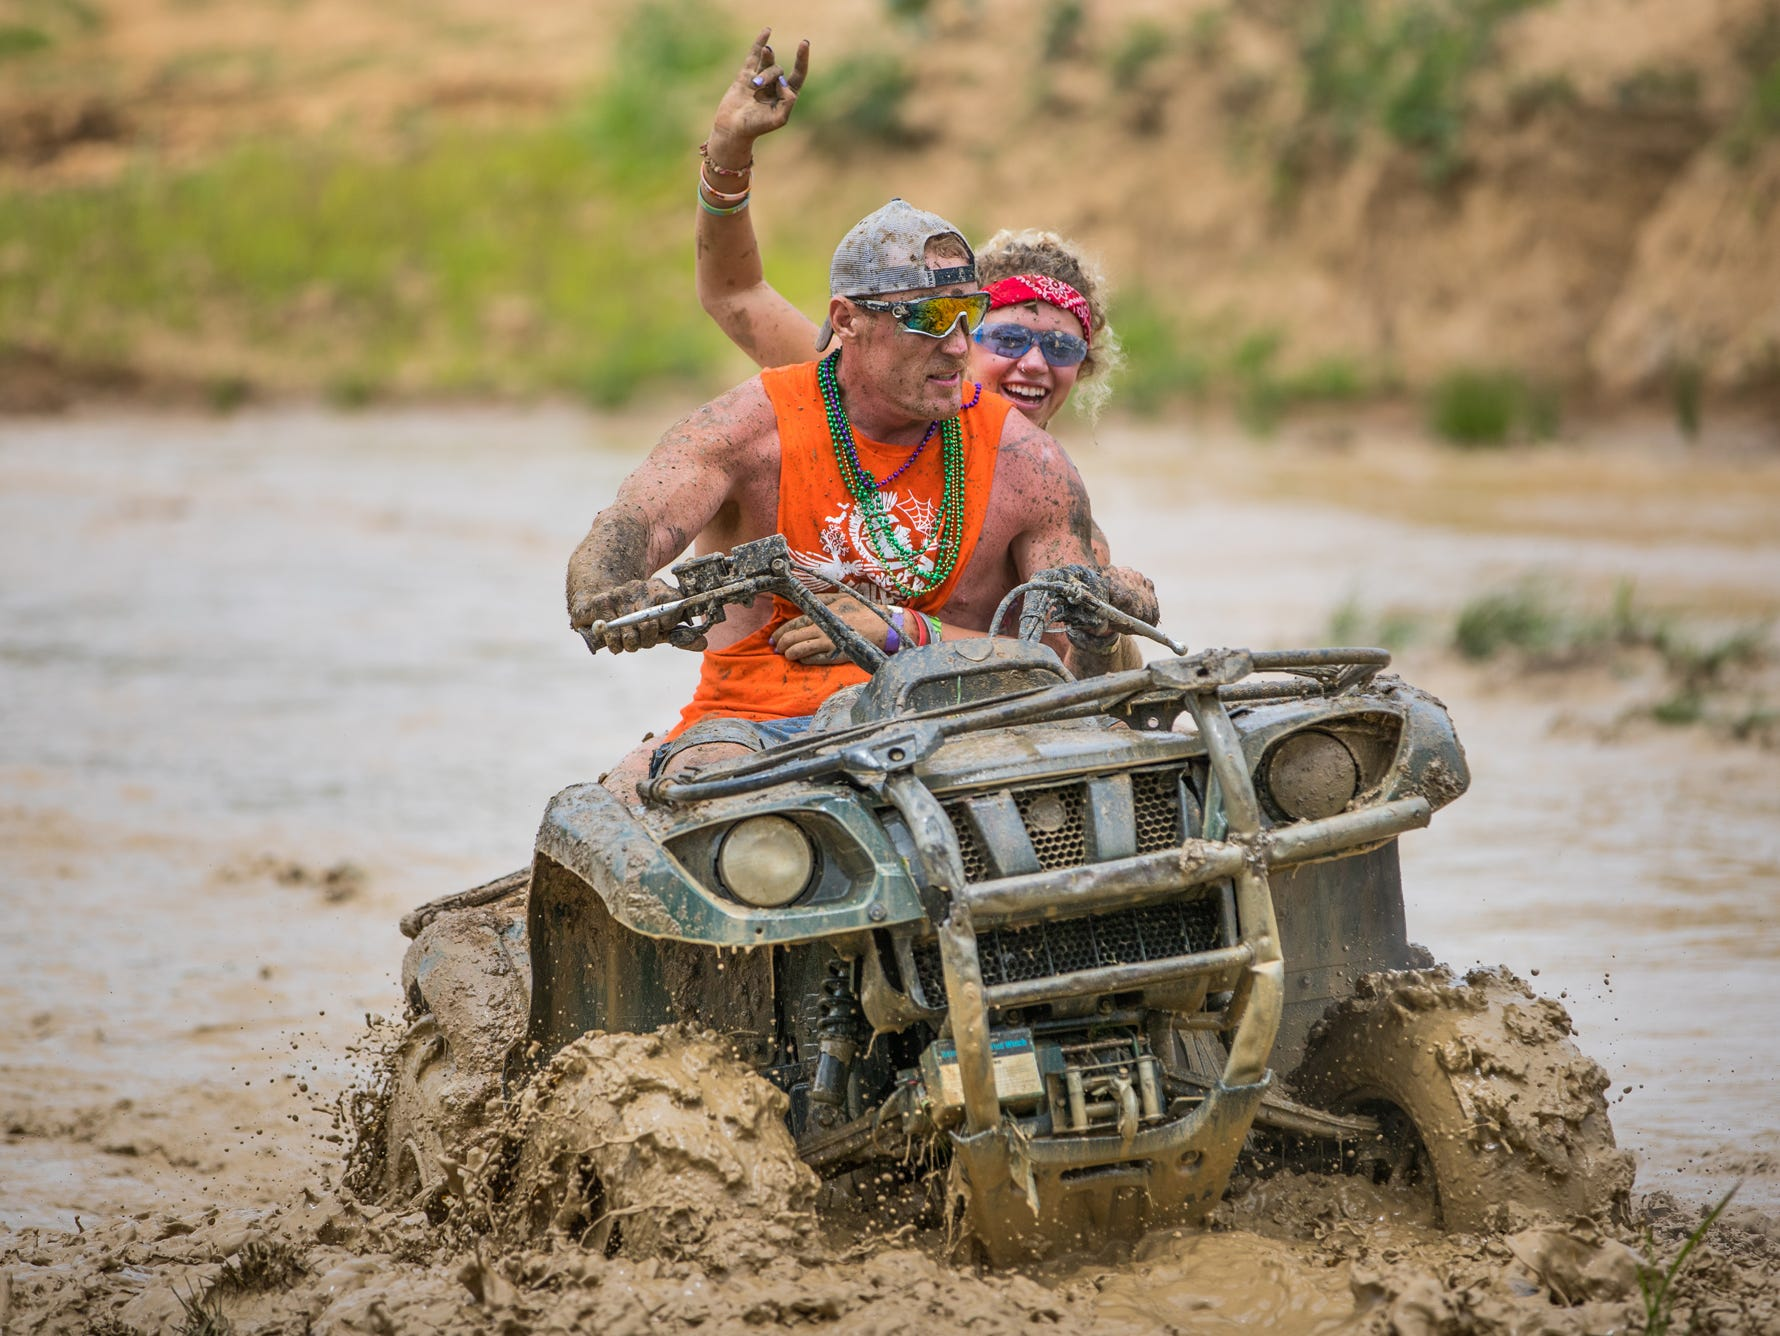 ATV riders make it through the largest of three mud pits during the Redneck Rave at BlackSwan Mudpit in Medora, Ind., on Friday, July 20, 2018.